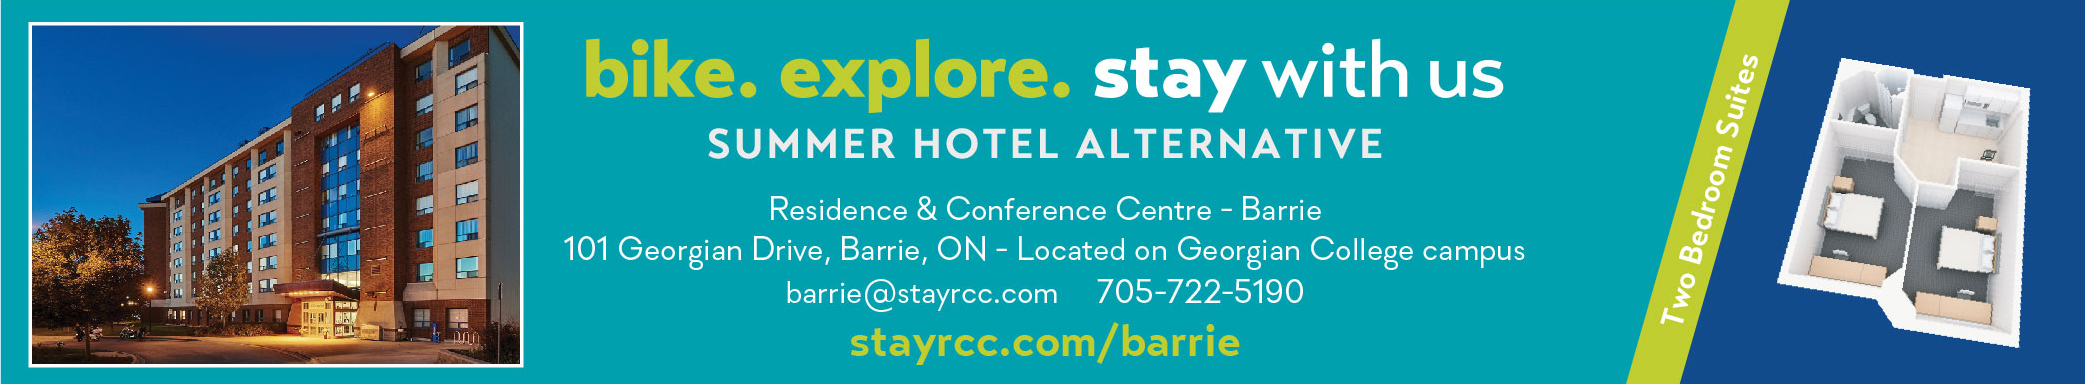 Residence and Conference Centre - Barrie